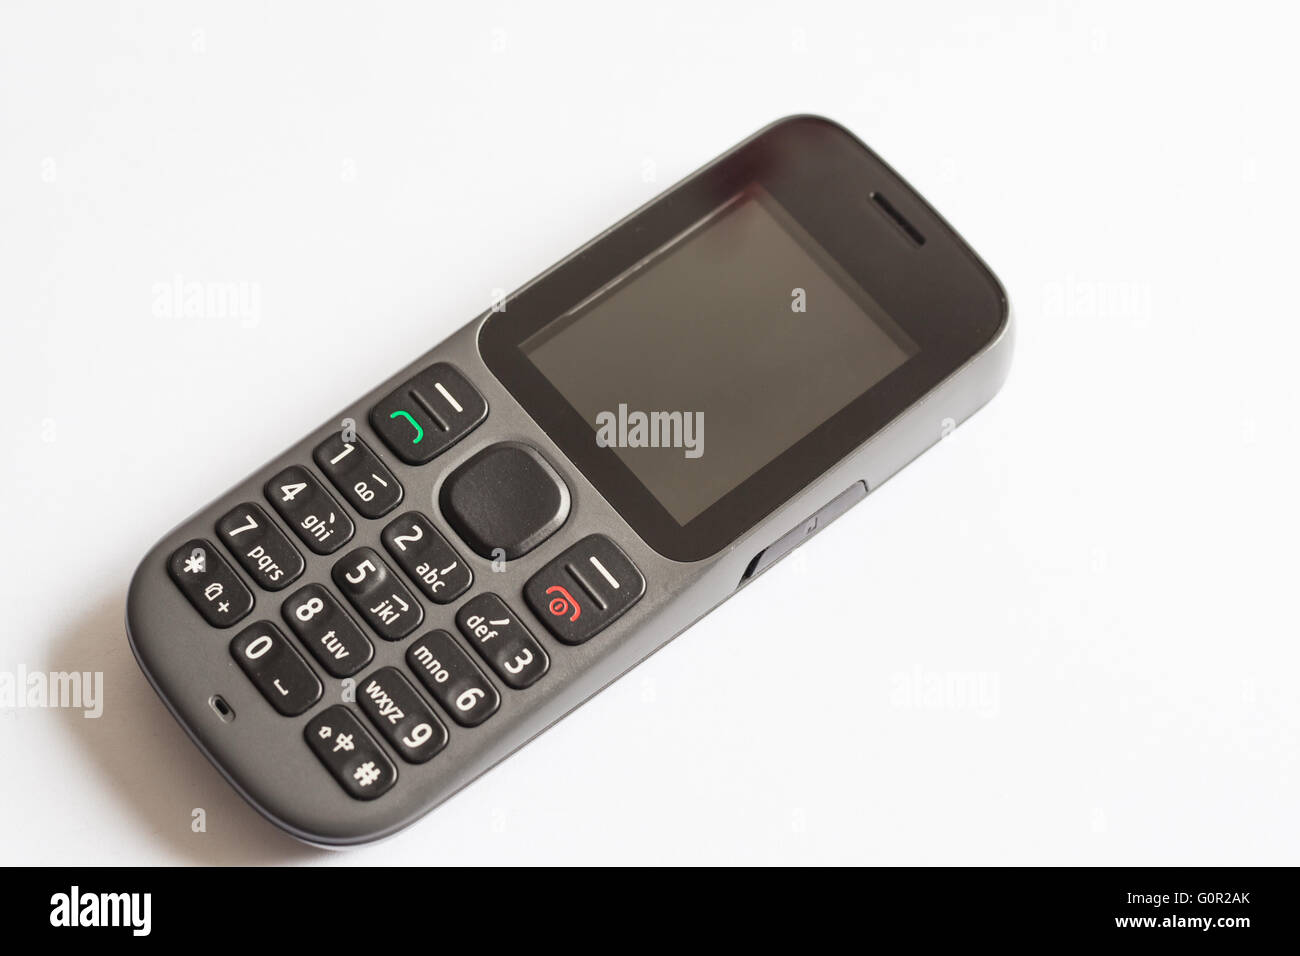 Old Style Cellphone With Chinese Symbols On Keyboard Stock Photo